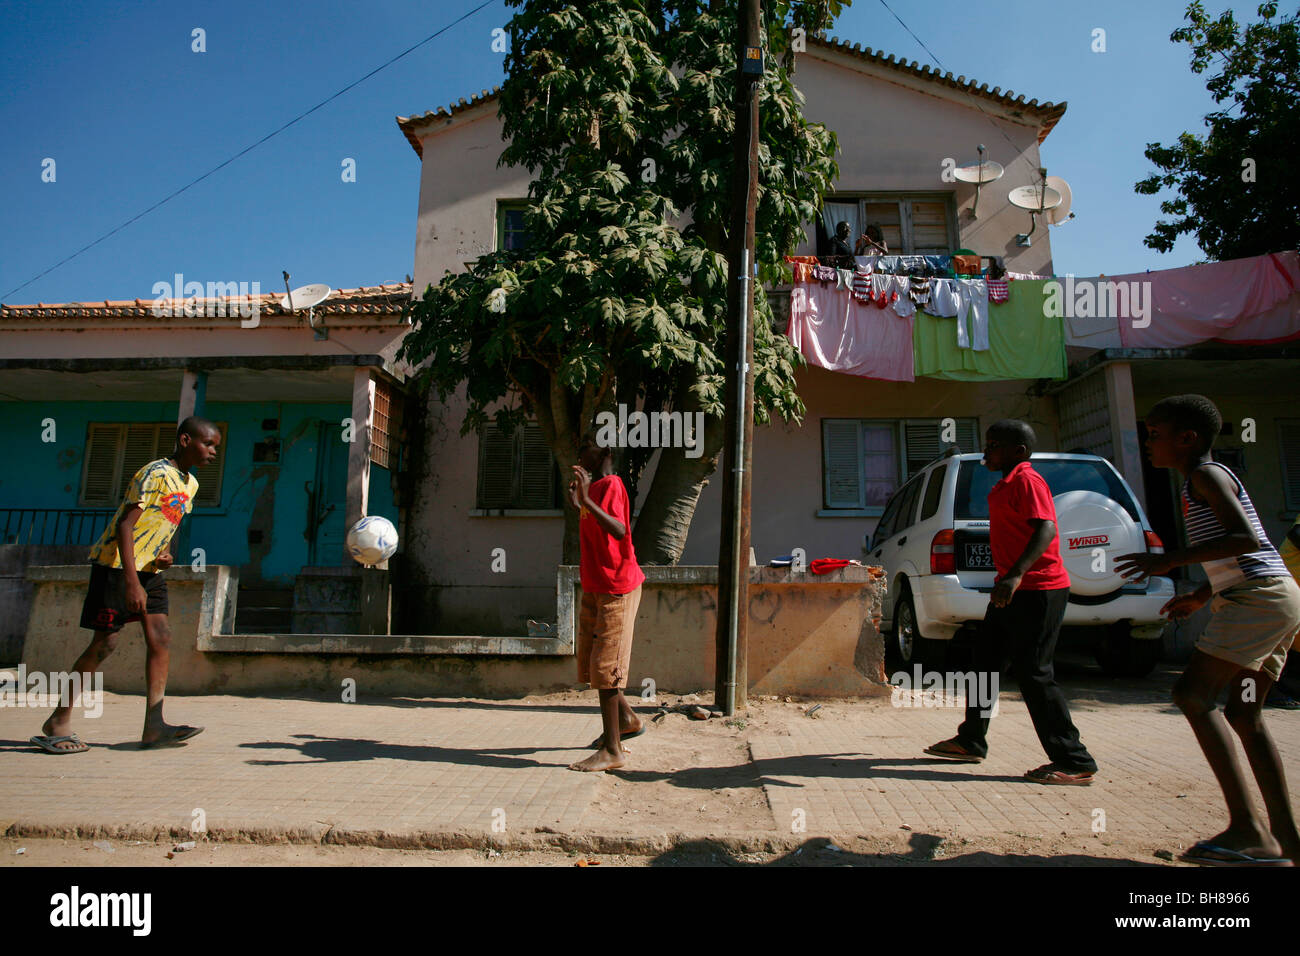 Children play football on a sidewalk in Menongue, Angola, Africa. - Stock Image